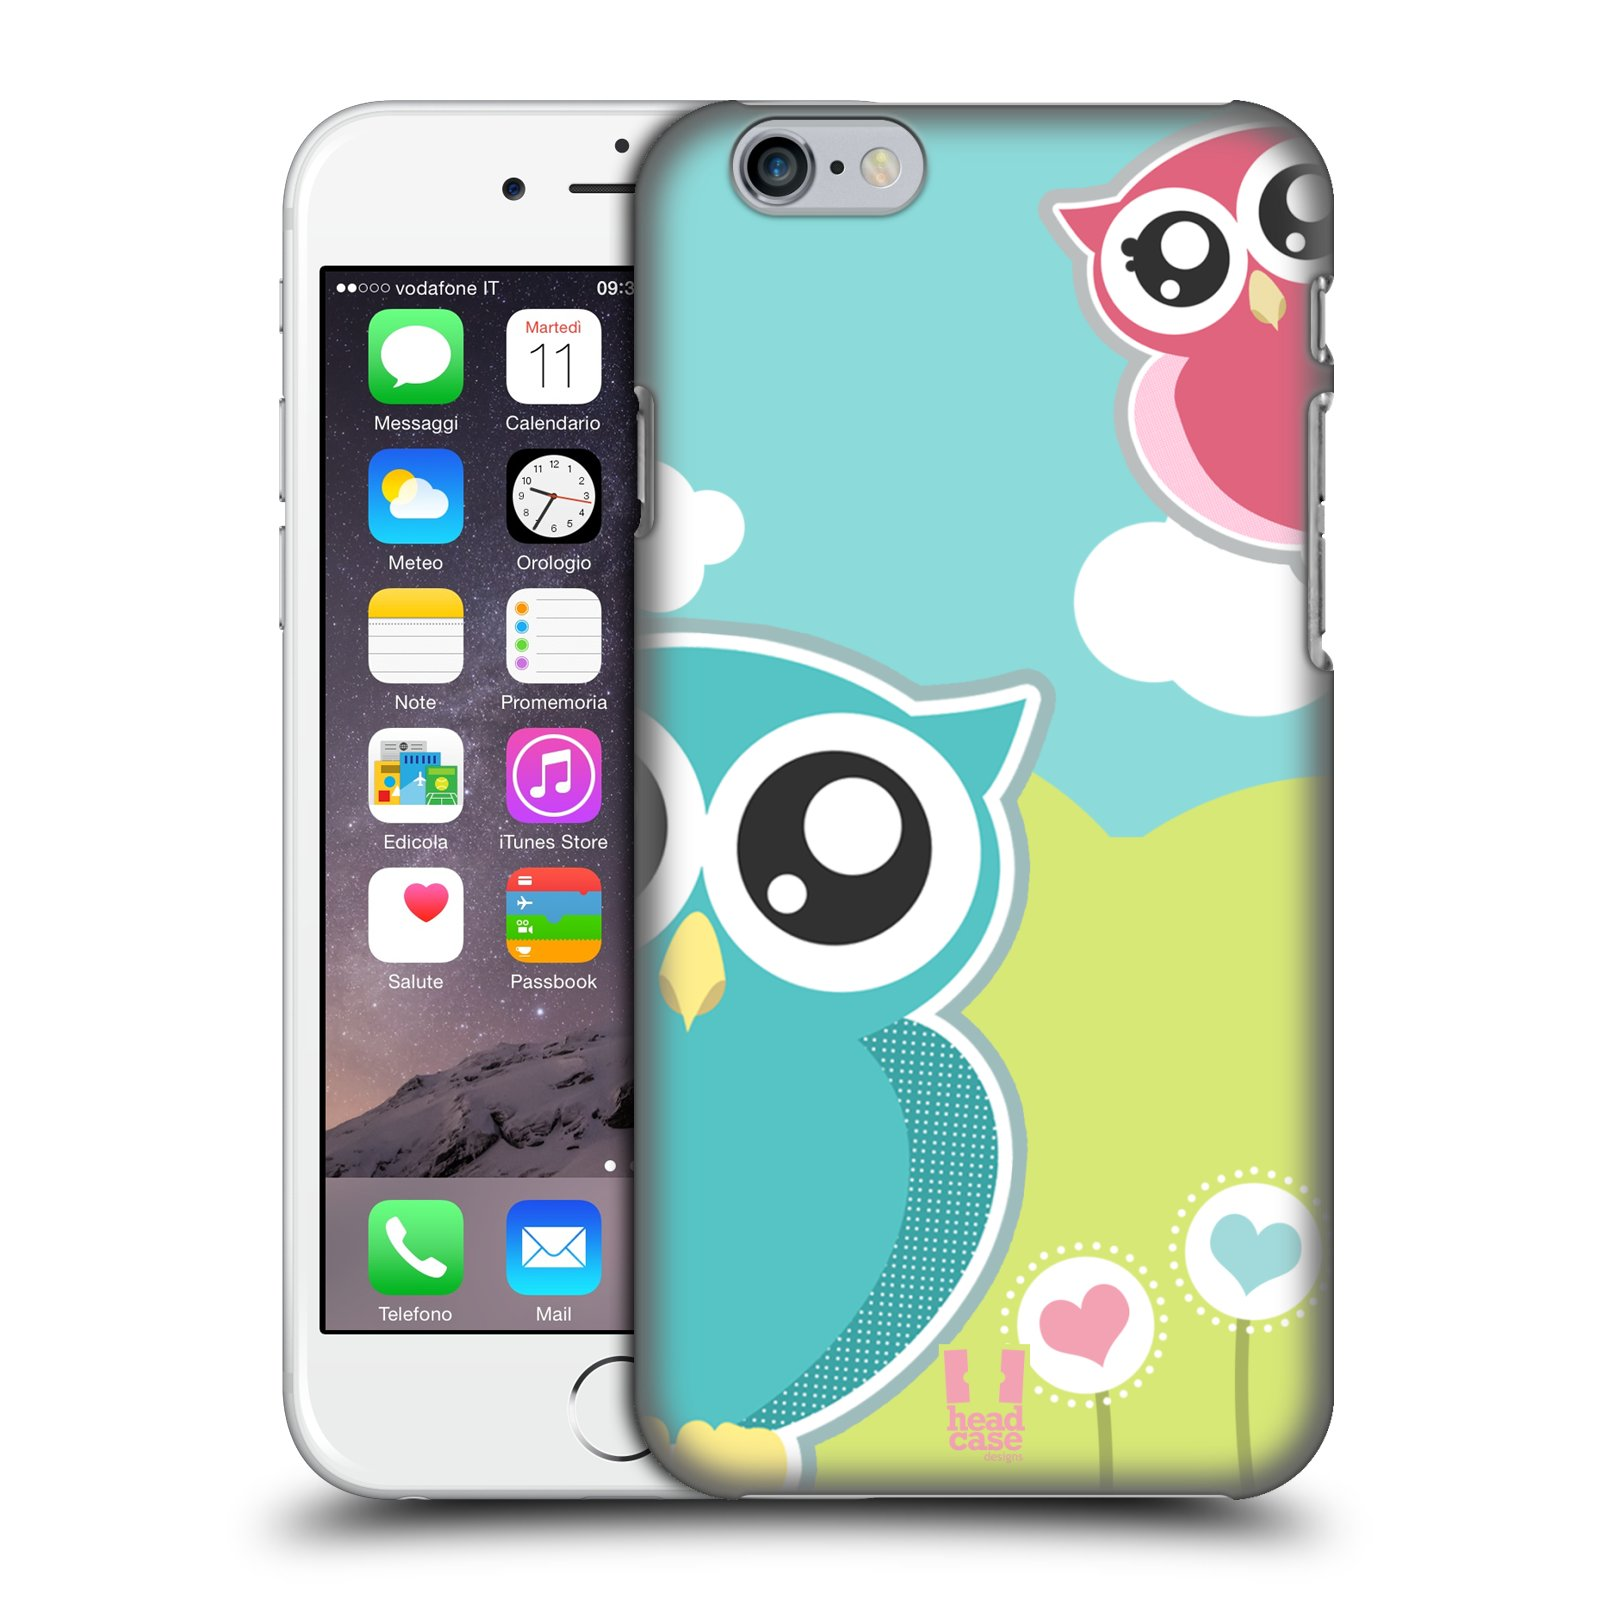 HEAD-CASE-DESIGNS-KAWAII-SERIES-1-HARD-BACK-CASE-FOR-APPLE-iPHONE-PHONES